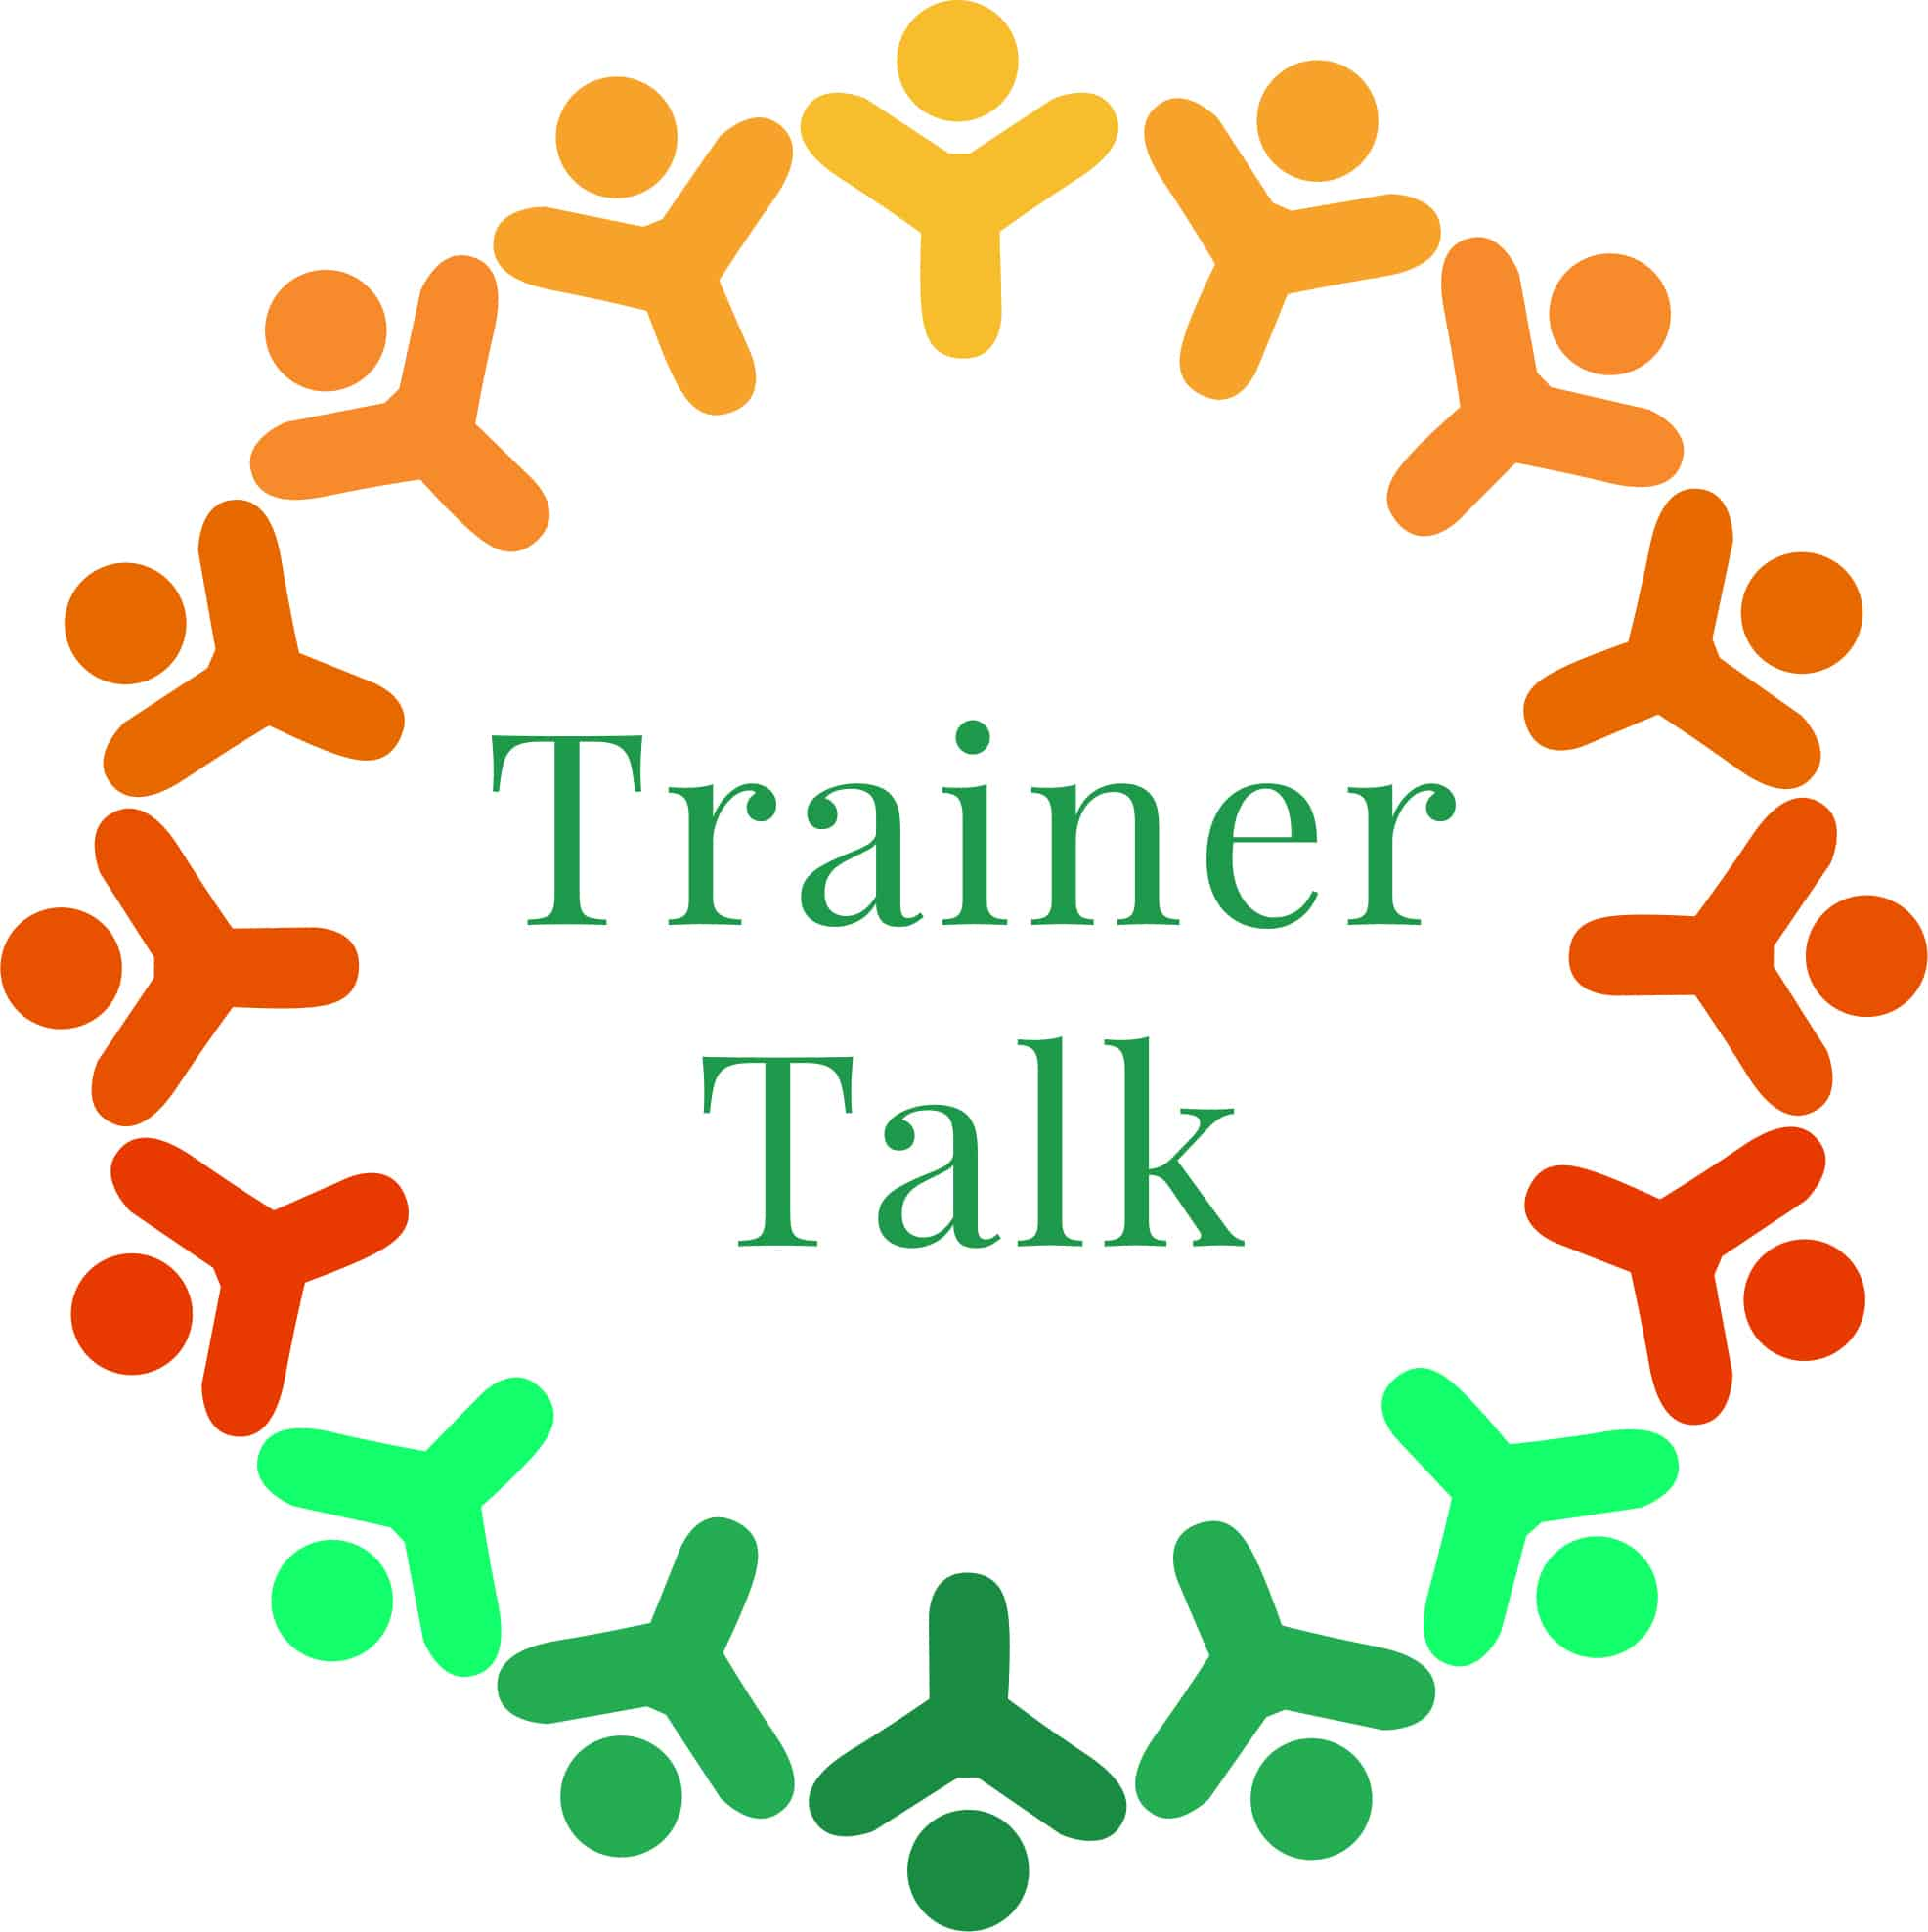 Join Trainer Talk